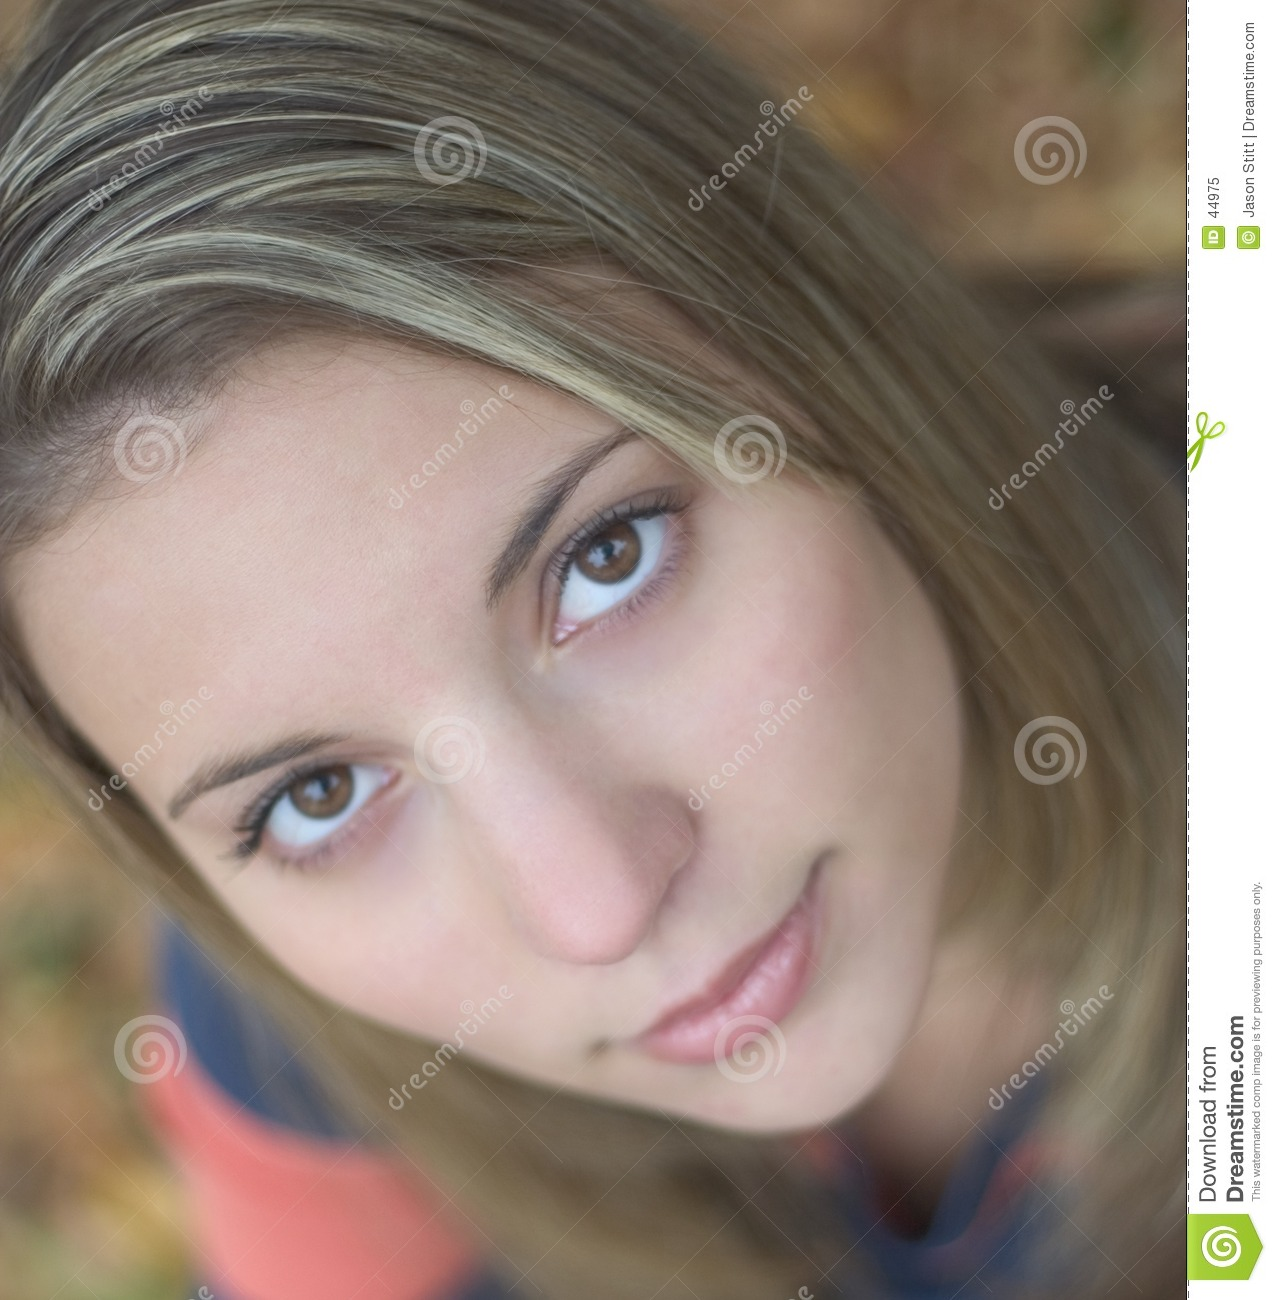 Beautiful Face Quotes For Girl: Beautiful Woman Royalty Free Stock Photo